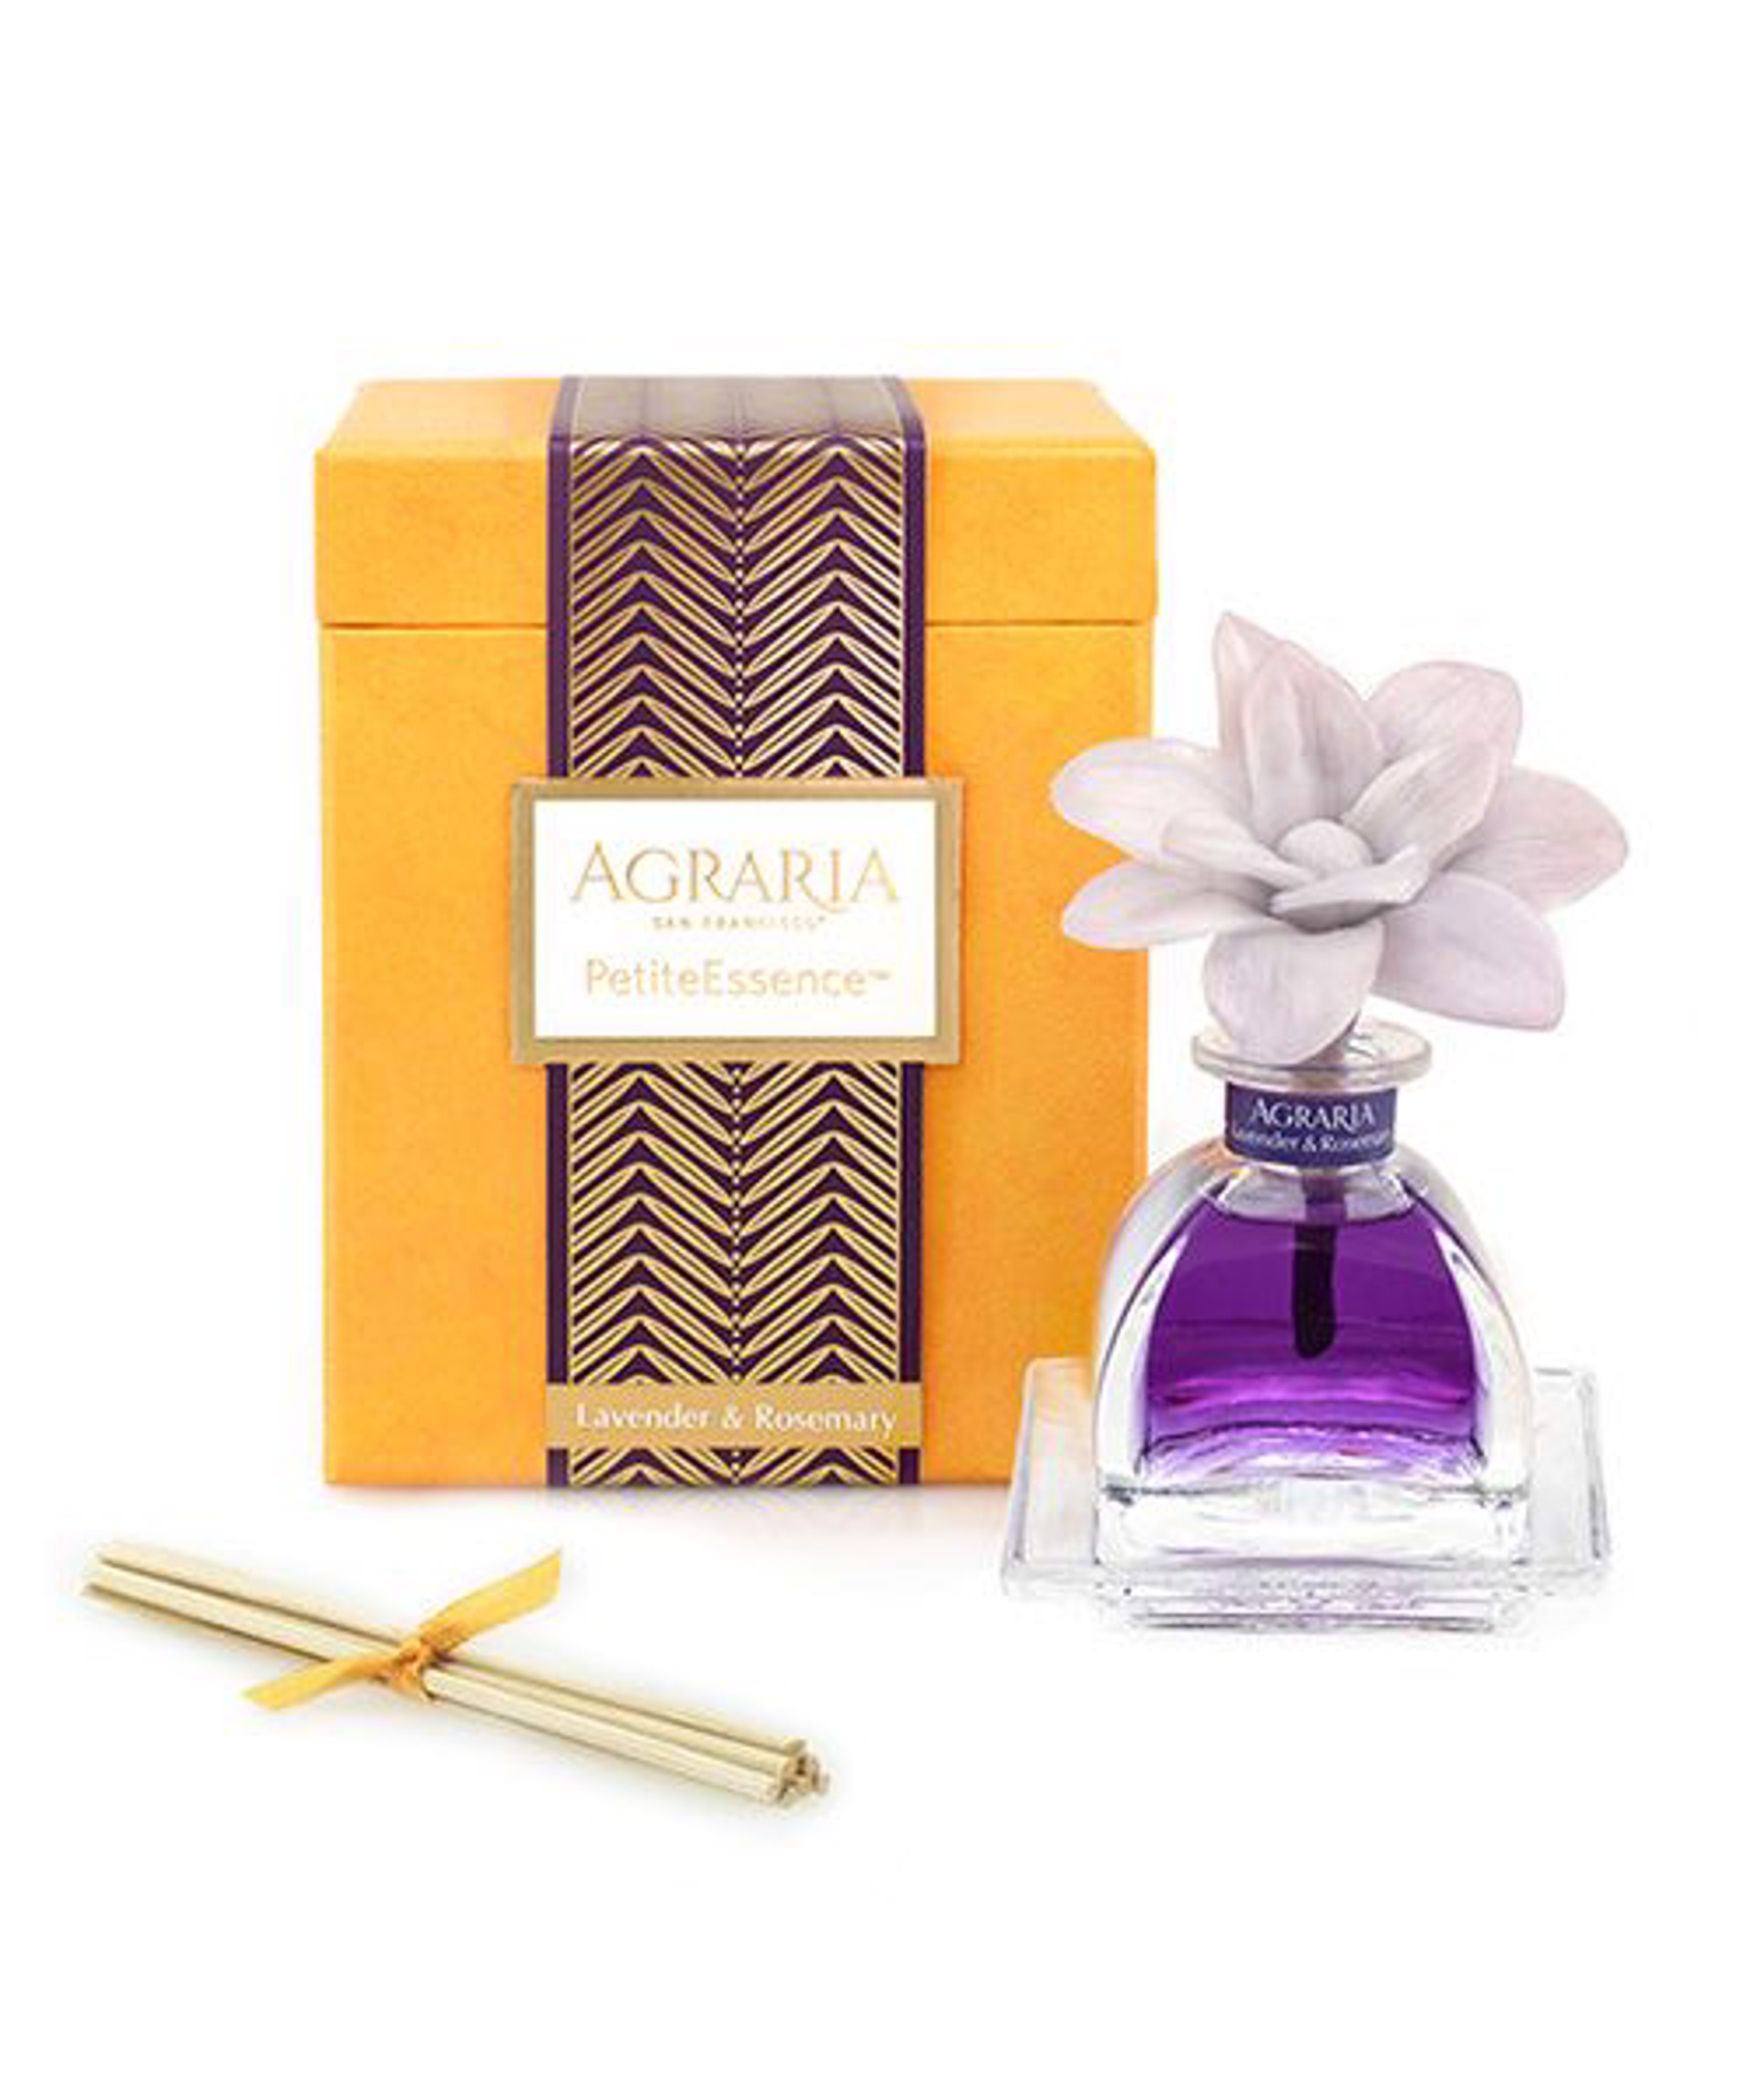 Lavender & Rosemary Petite Essence Diffuser 1.7oz by Agraria Diffusers